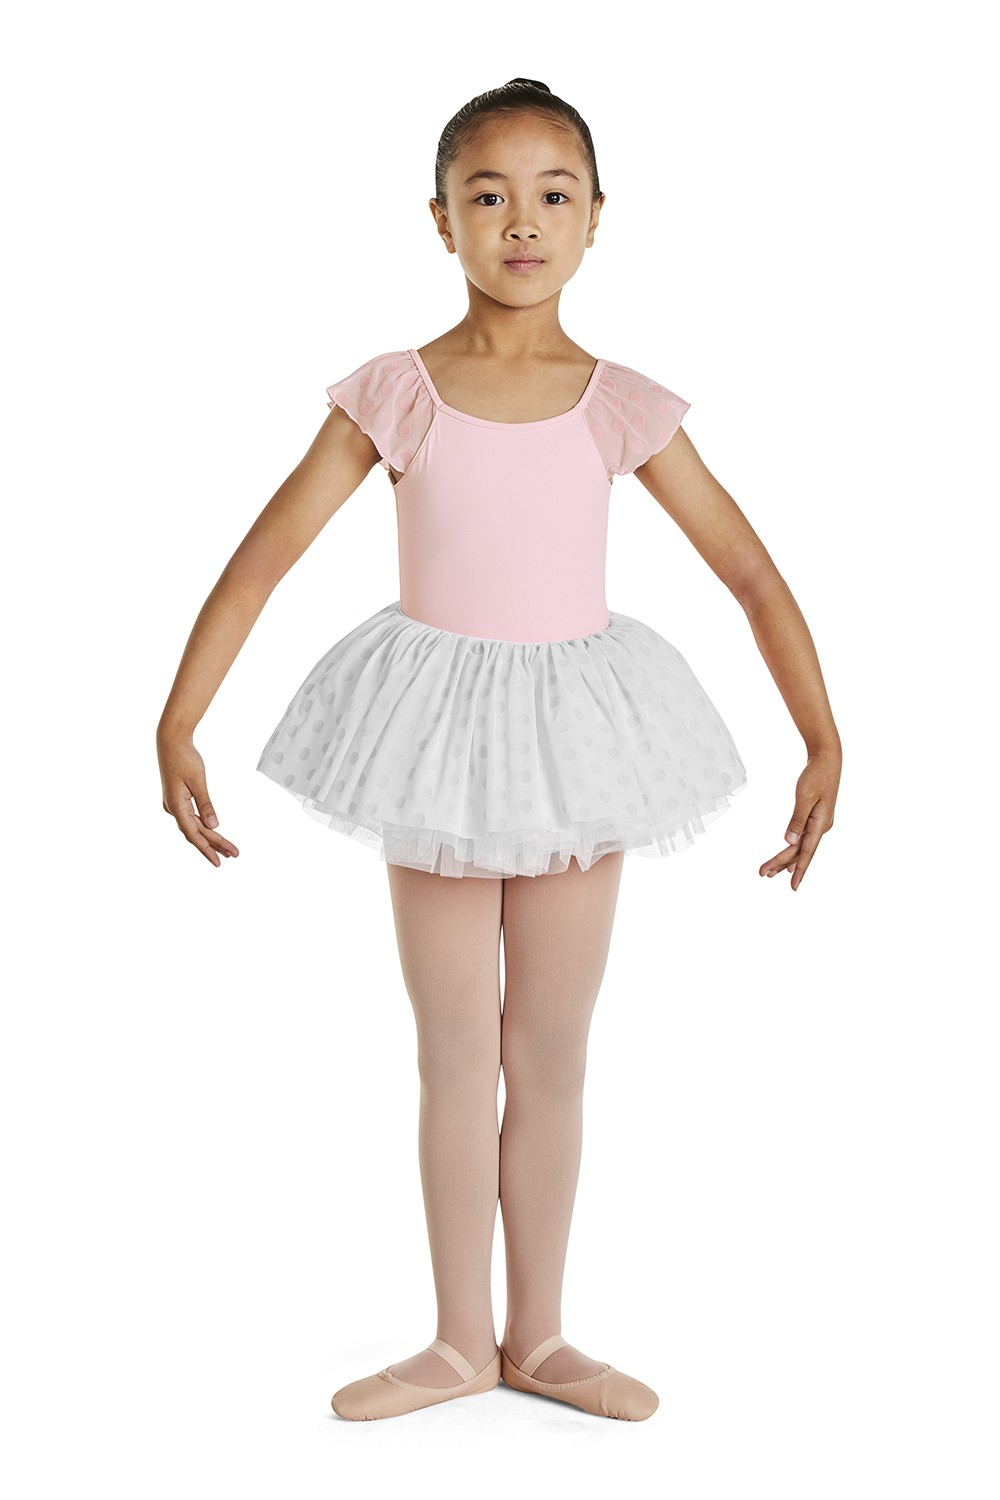 Flocked Tutu Skirt Children's Dance Skirts